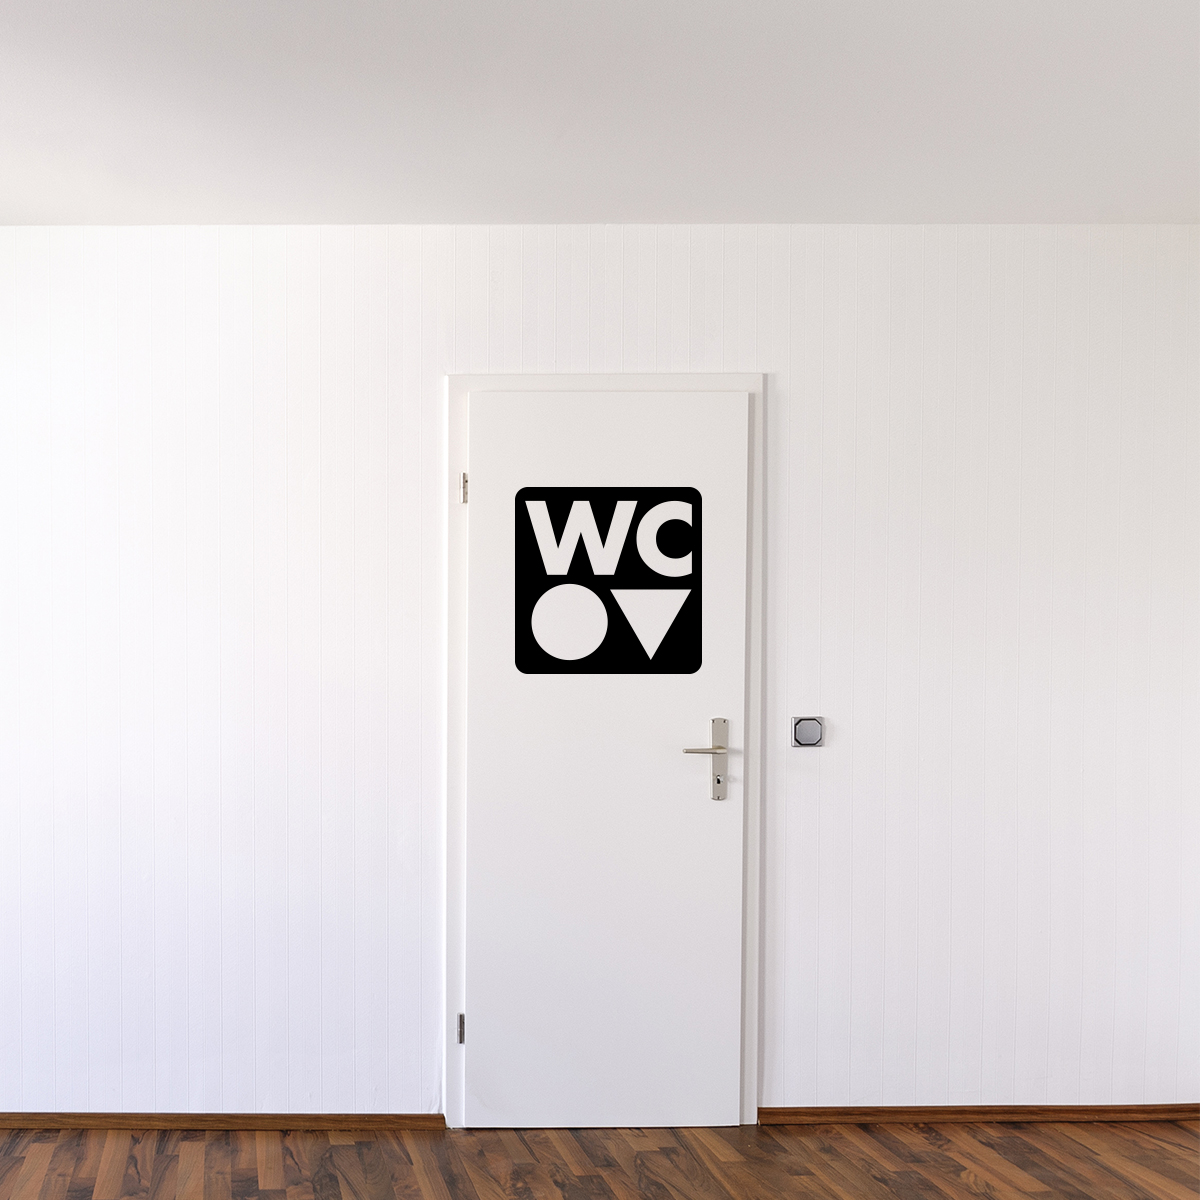 Sticker porte toilette wc stickers toilettes porte for Porte toilette